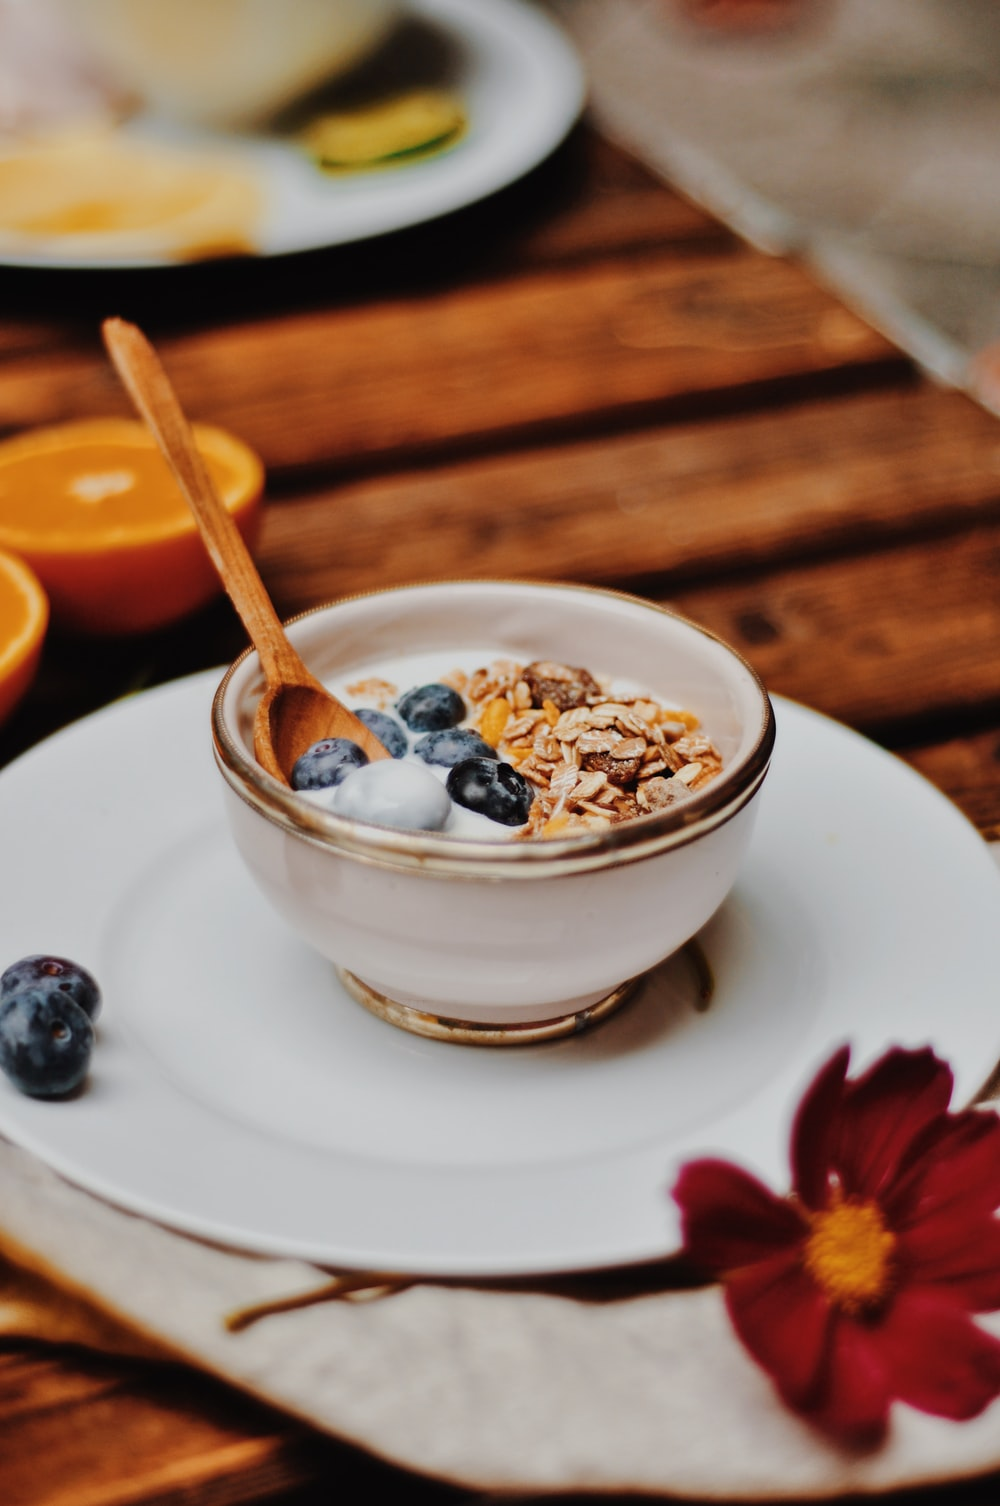 white ceramic bowl with cereal and spoon